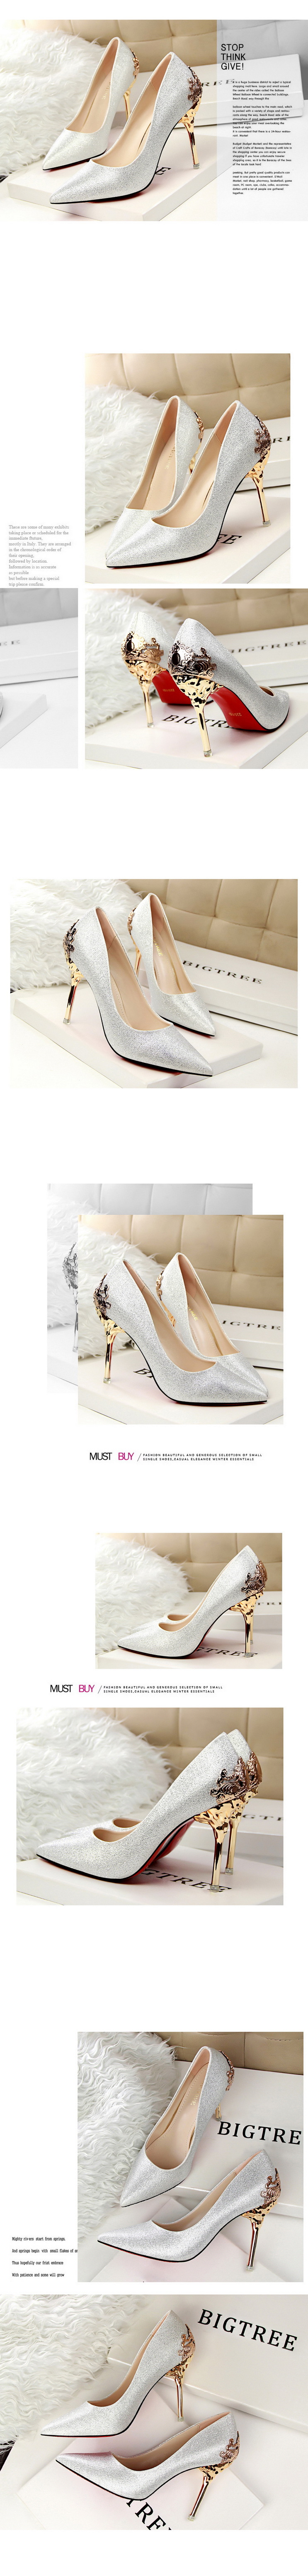 Spring Summer Women High Heels Shoes Pointed Toe Matel Heels Pumps Fashion Sexy Shoes Heeled Carved Metal Office Wedding Shoes